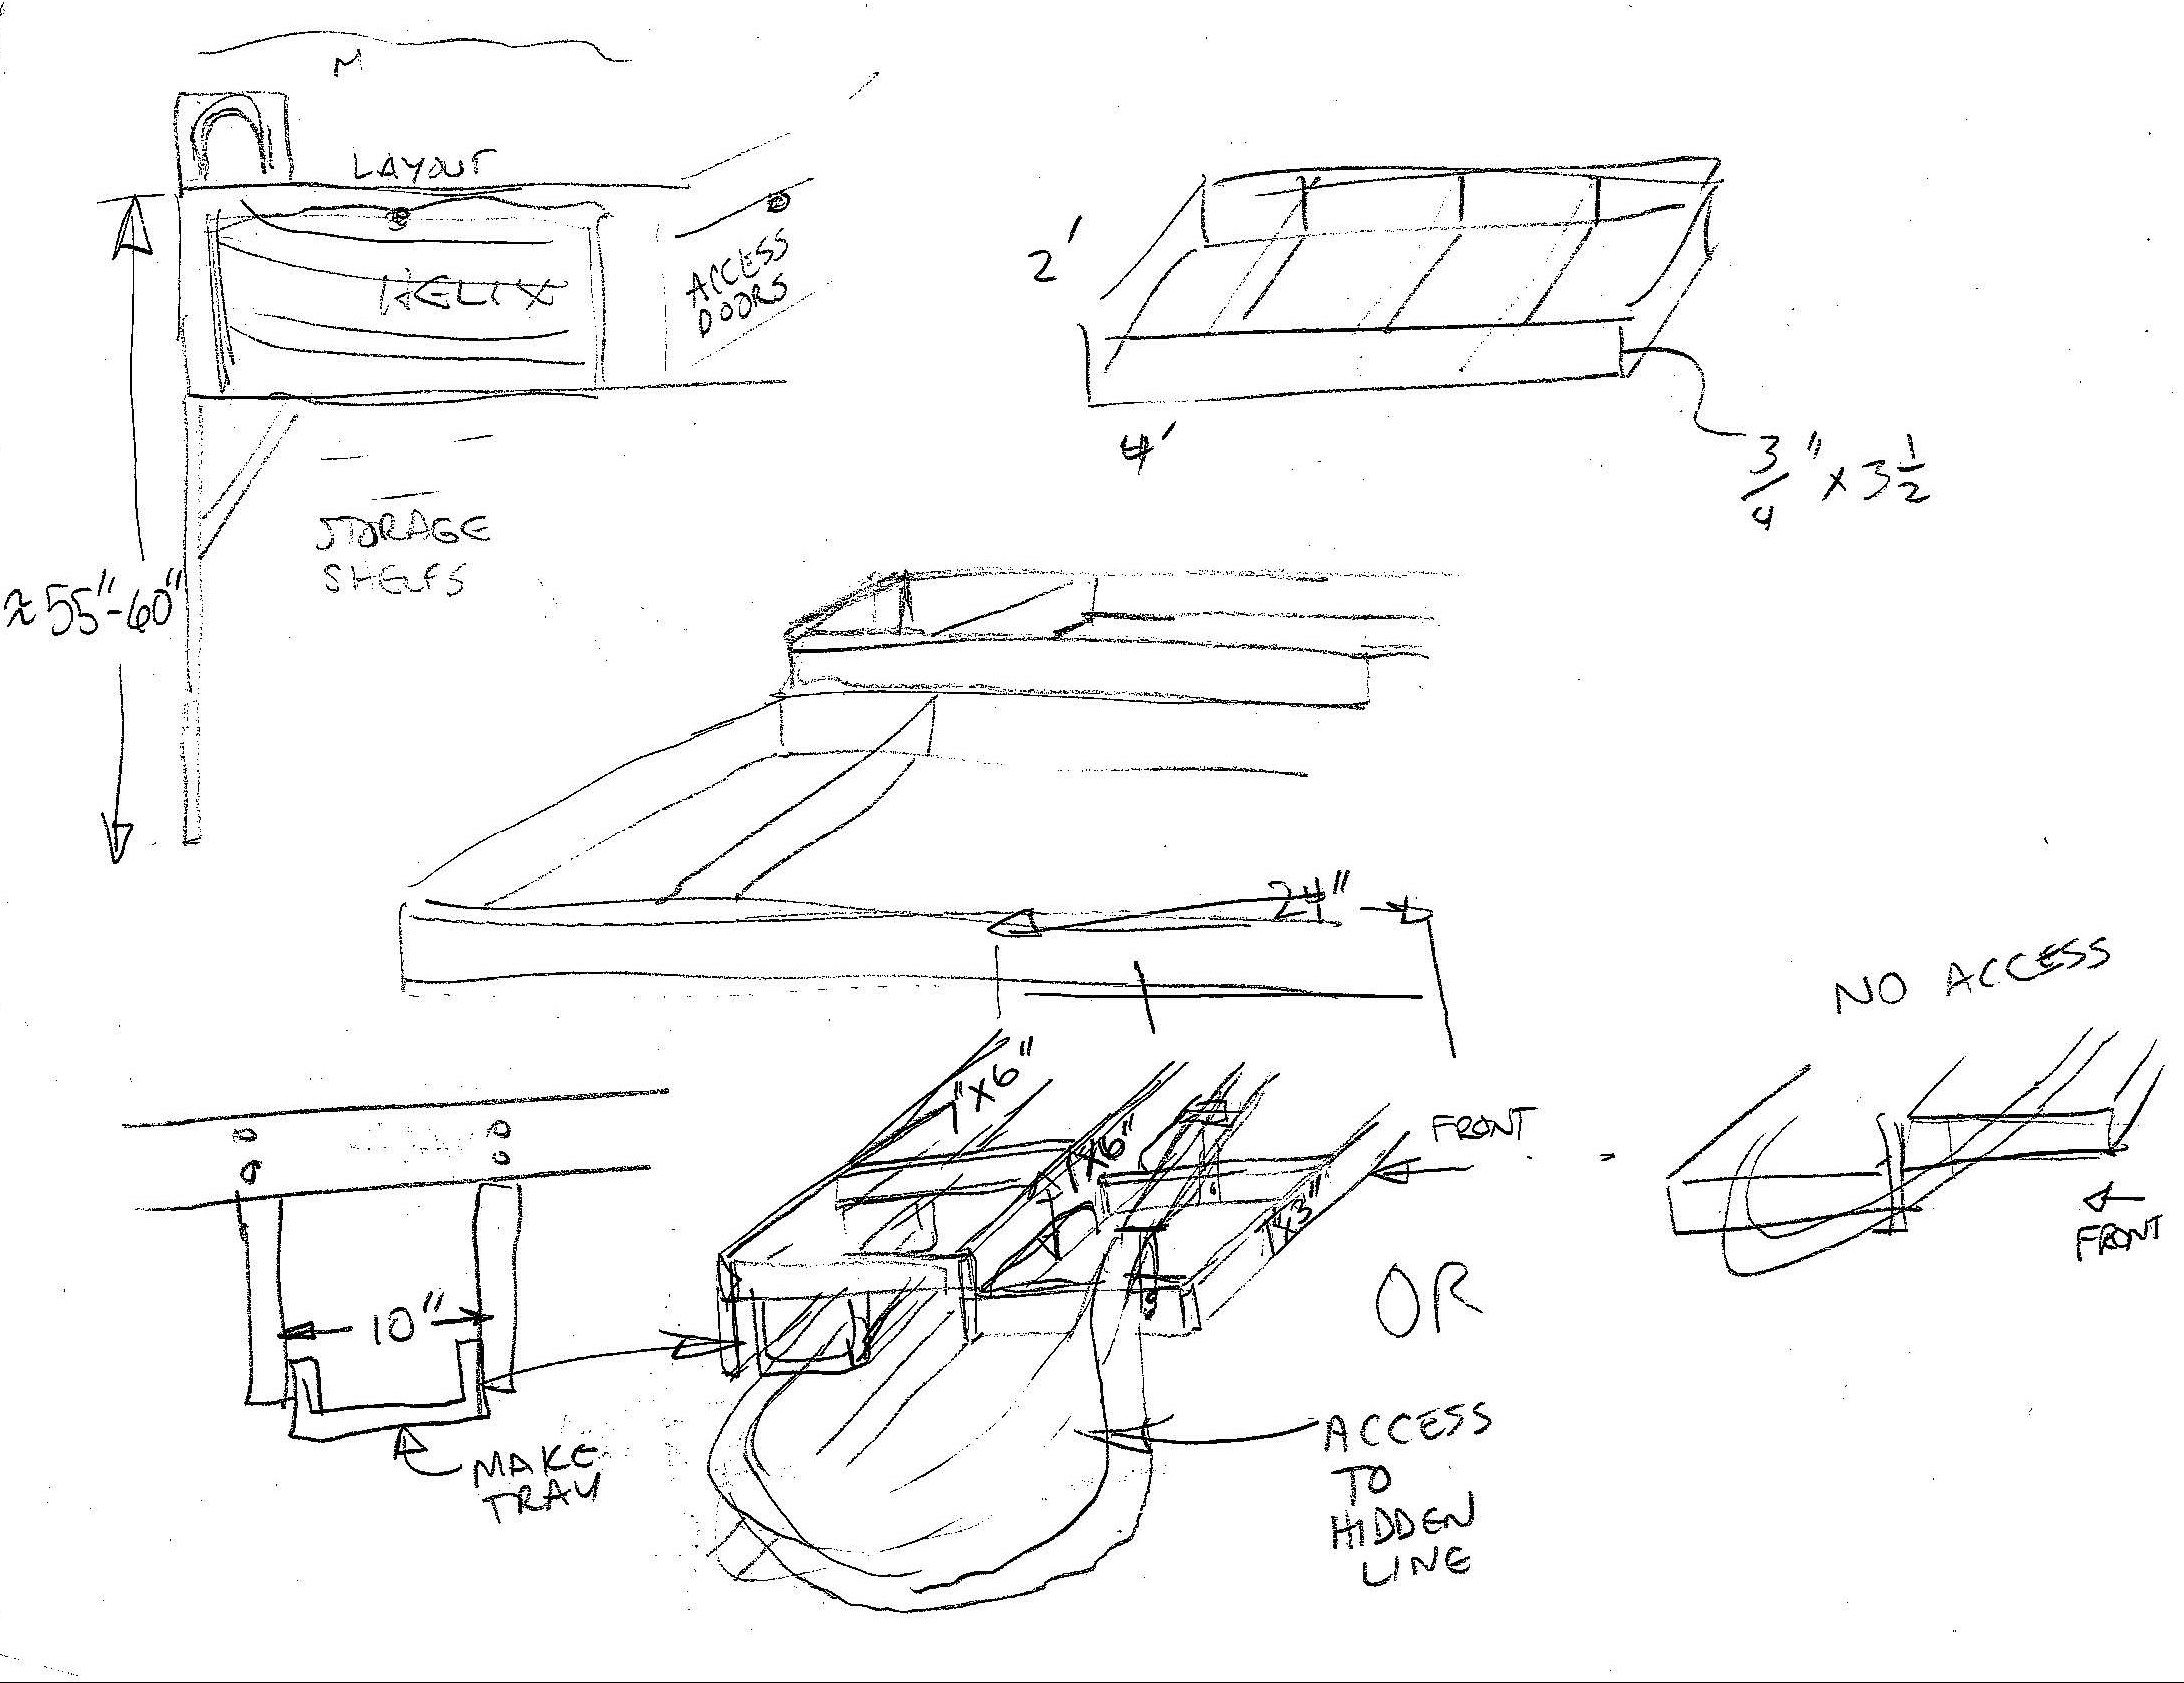 benchwork-sketches-early-shelf-style-design-with-helix-e1540999511672.jpg